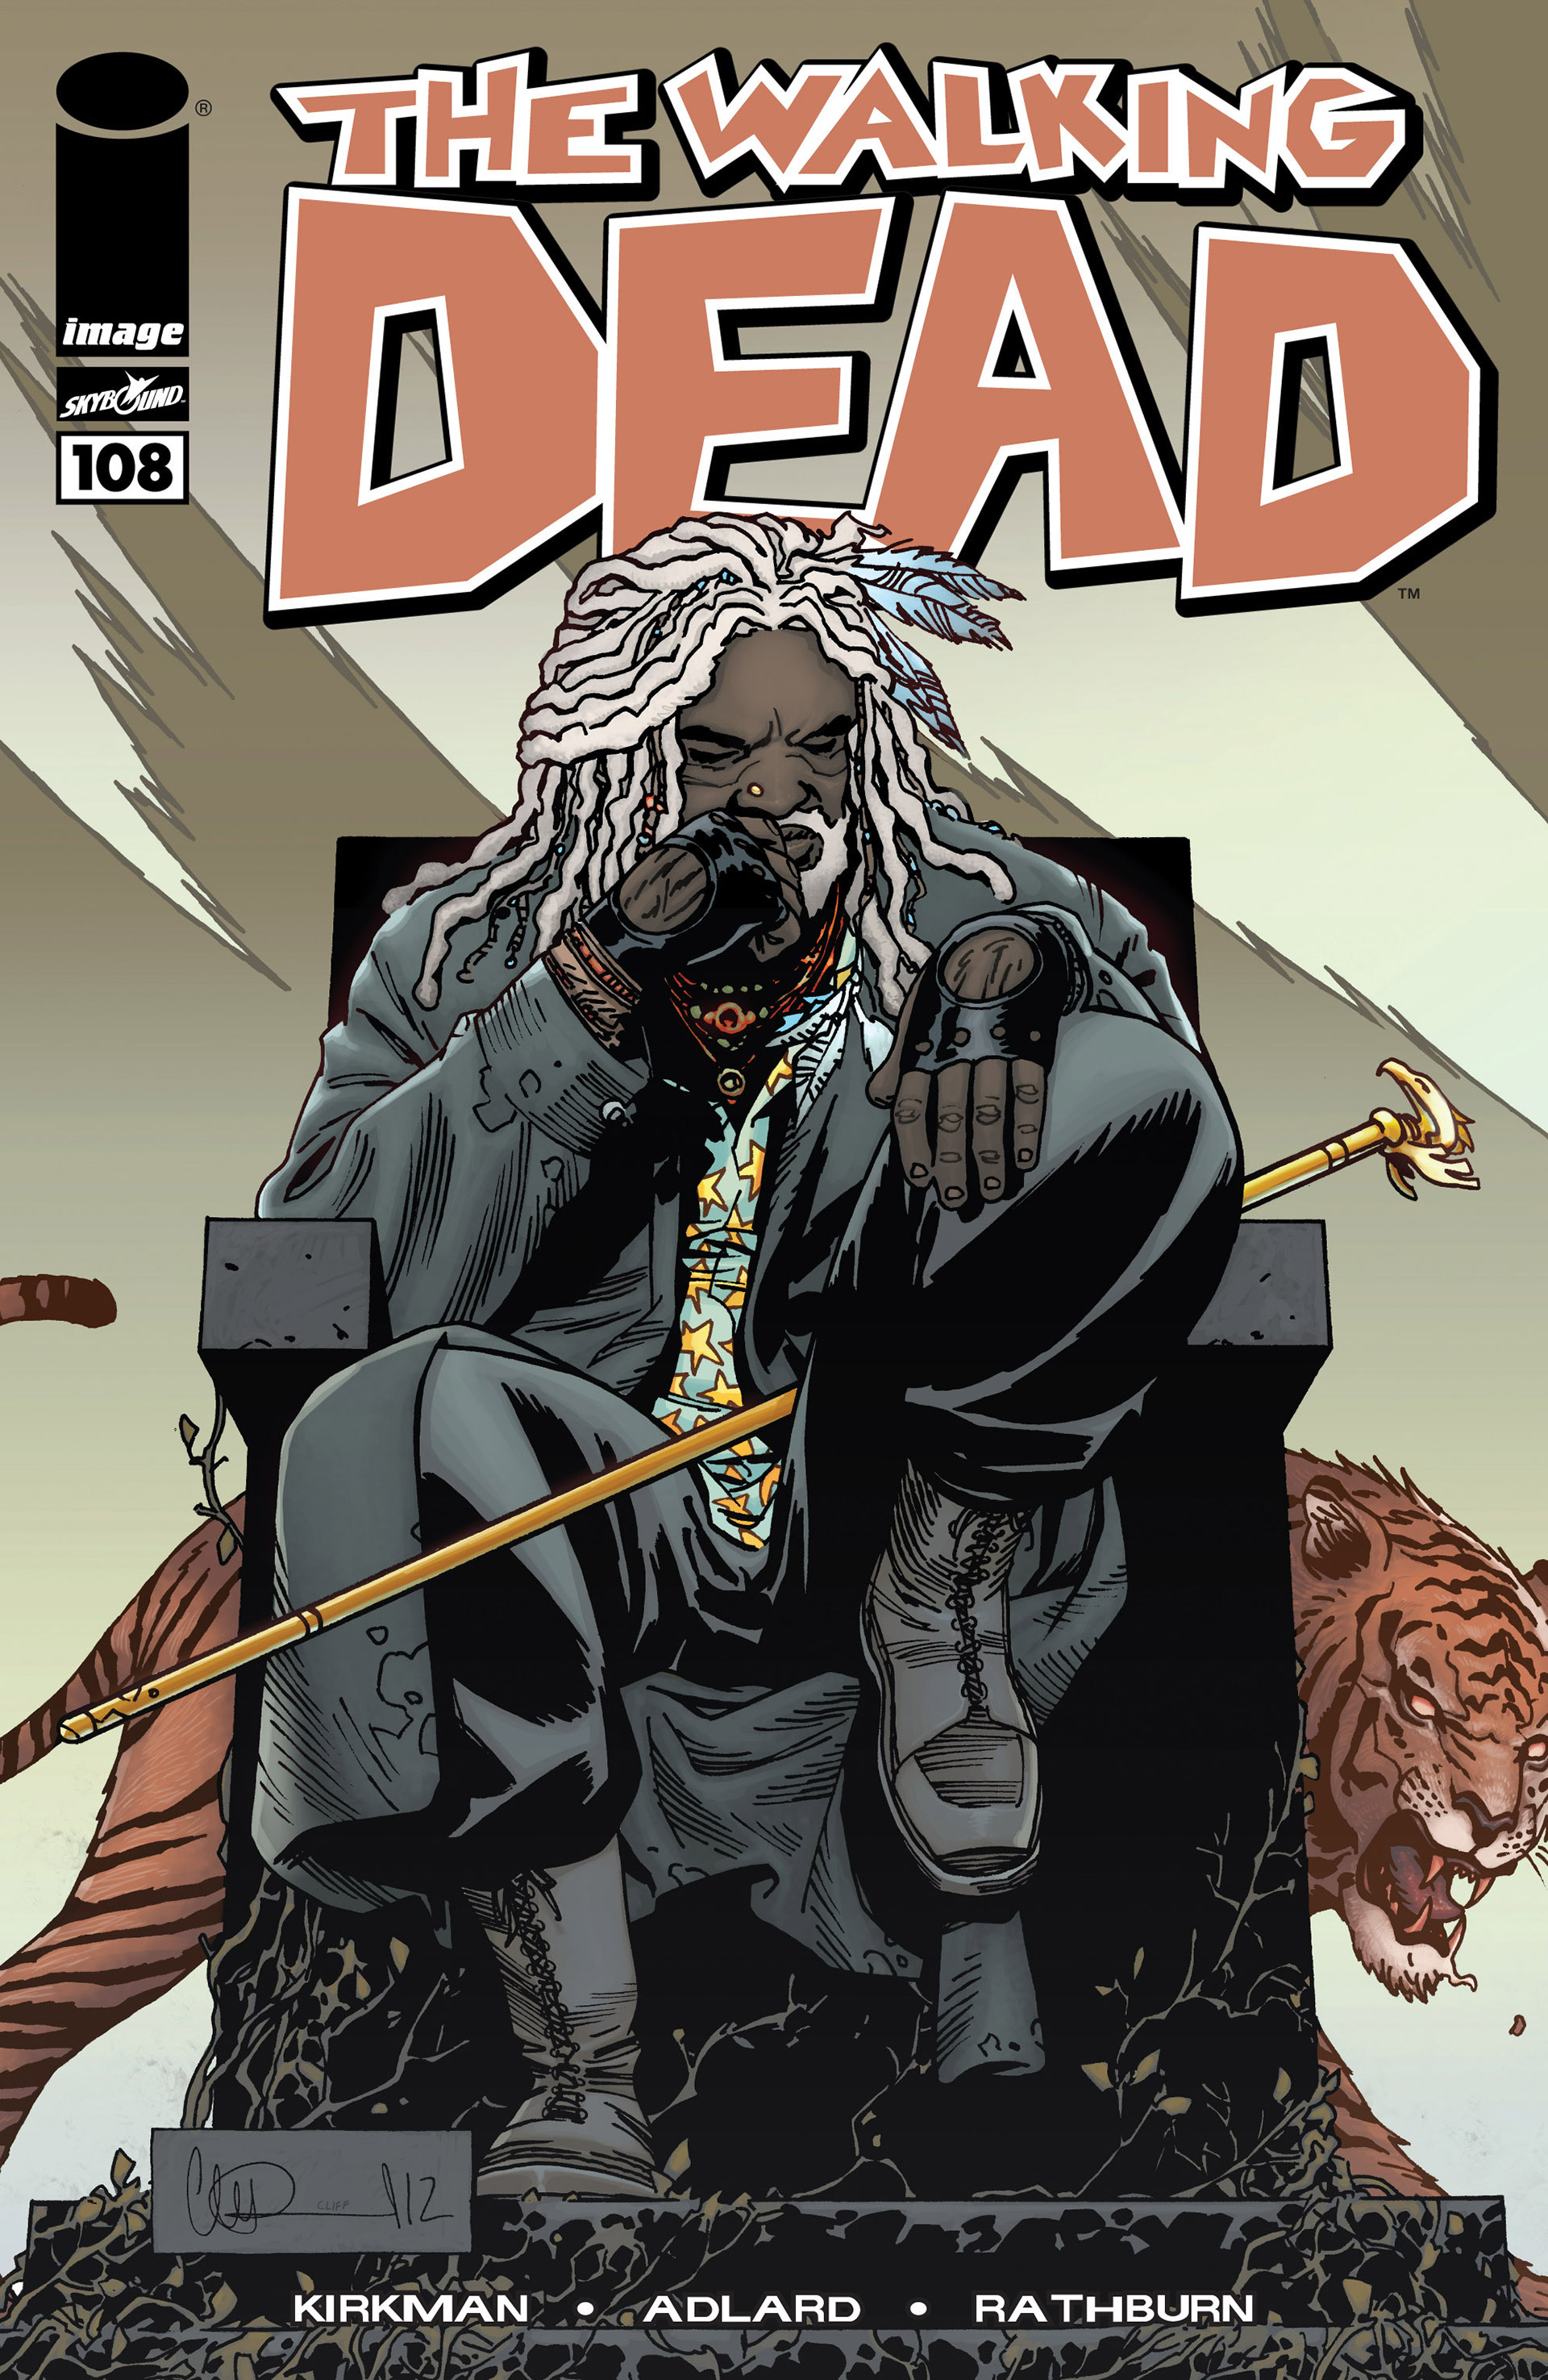 The Walking Dead 108 Page 1